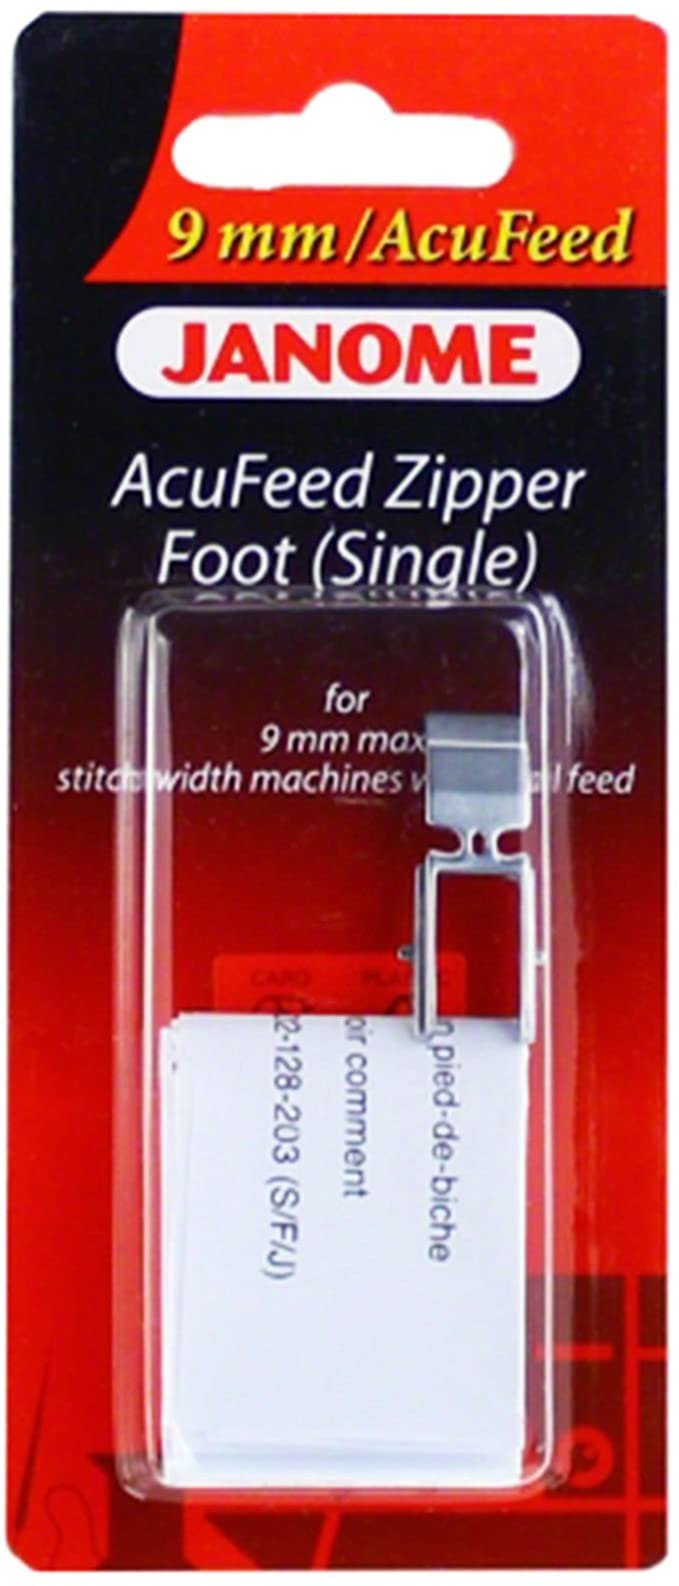 Foot Janome Accufeed Zipper (Single) BP